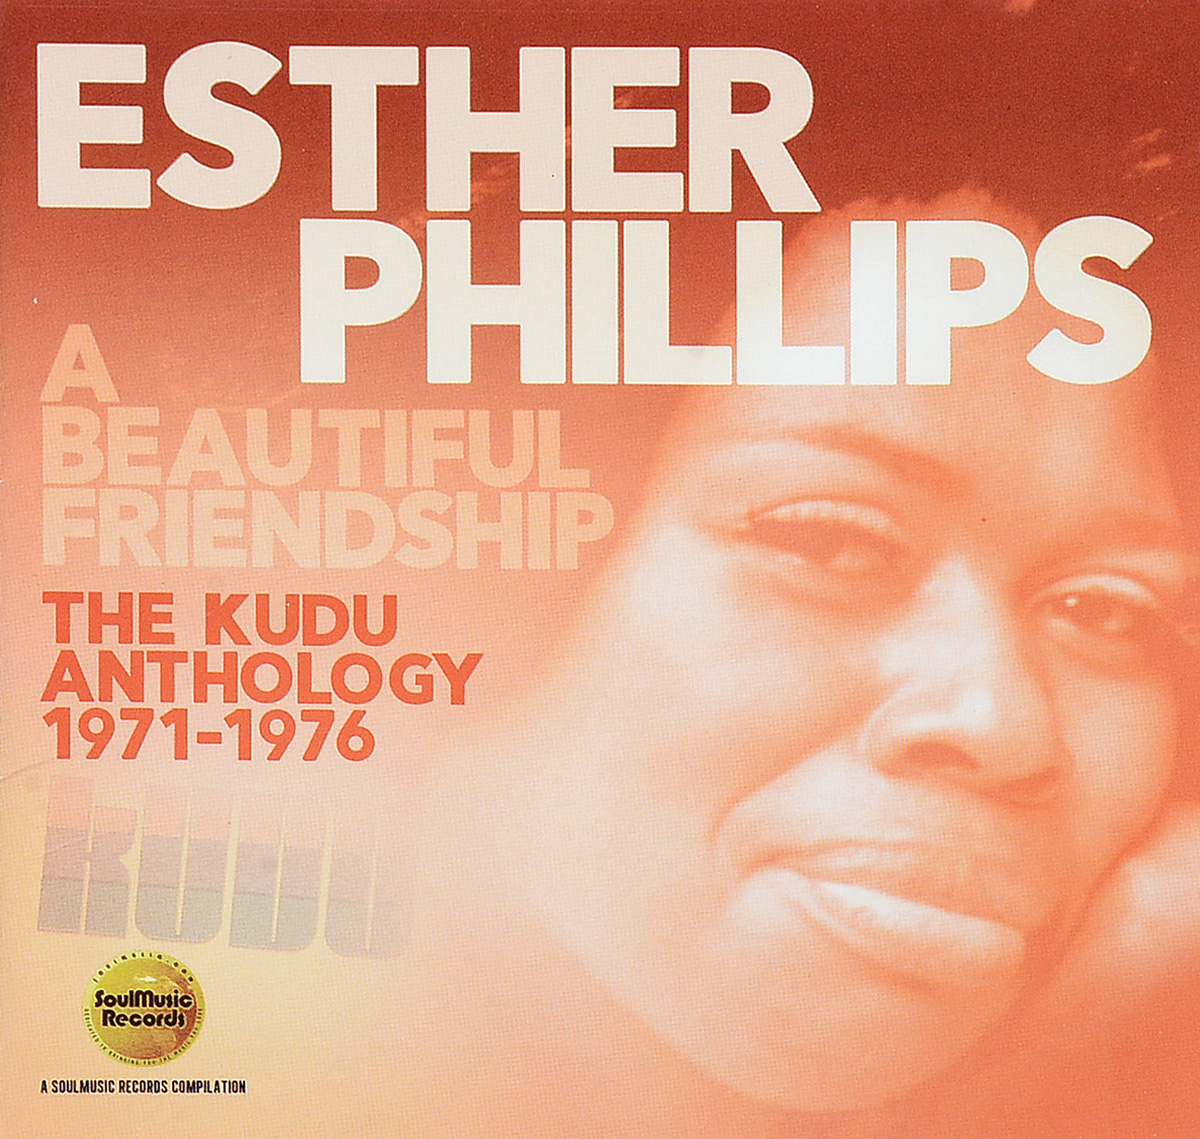 лучшая цена Эстер Филлипс Esther Phillips. A Beautiful Friendship: The Kudu Anthology 1971-1976 (2 CD)